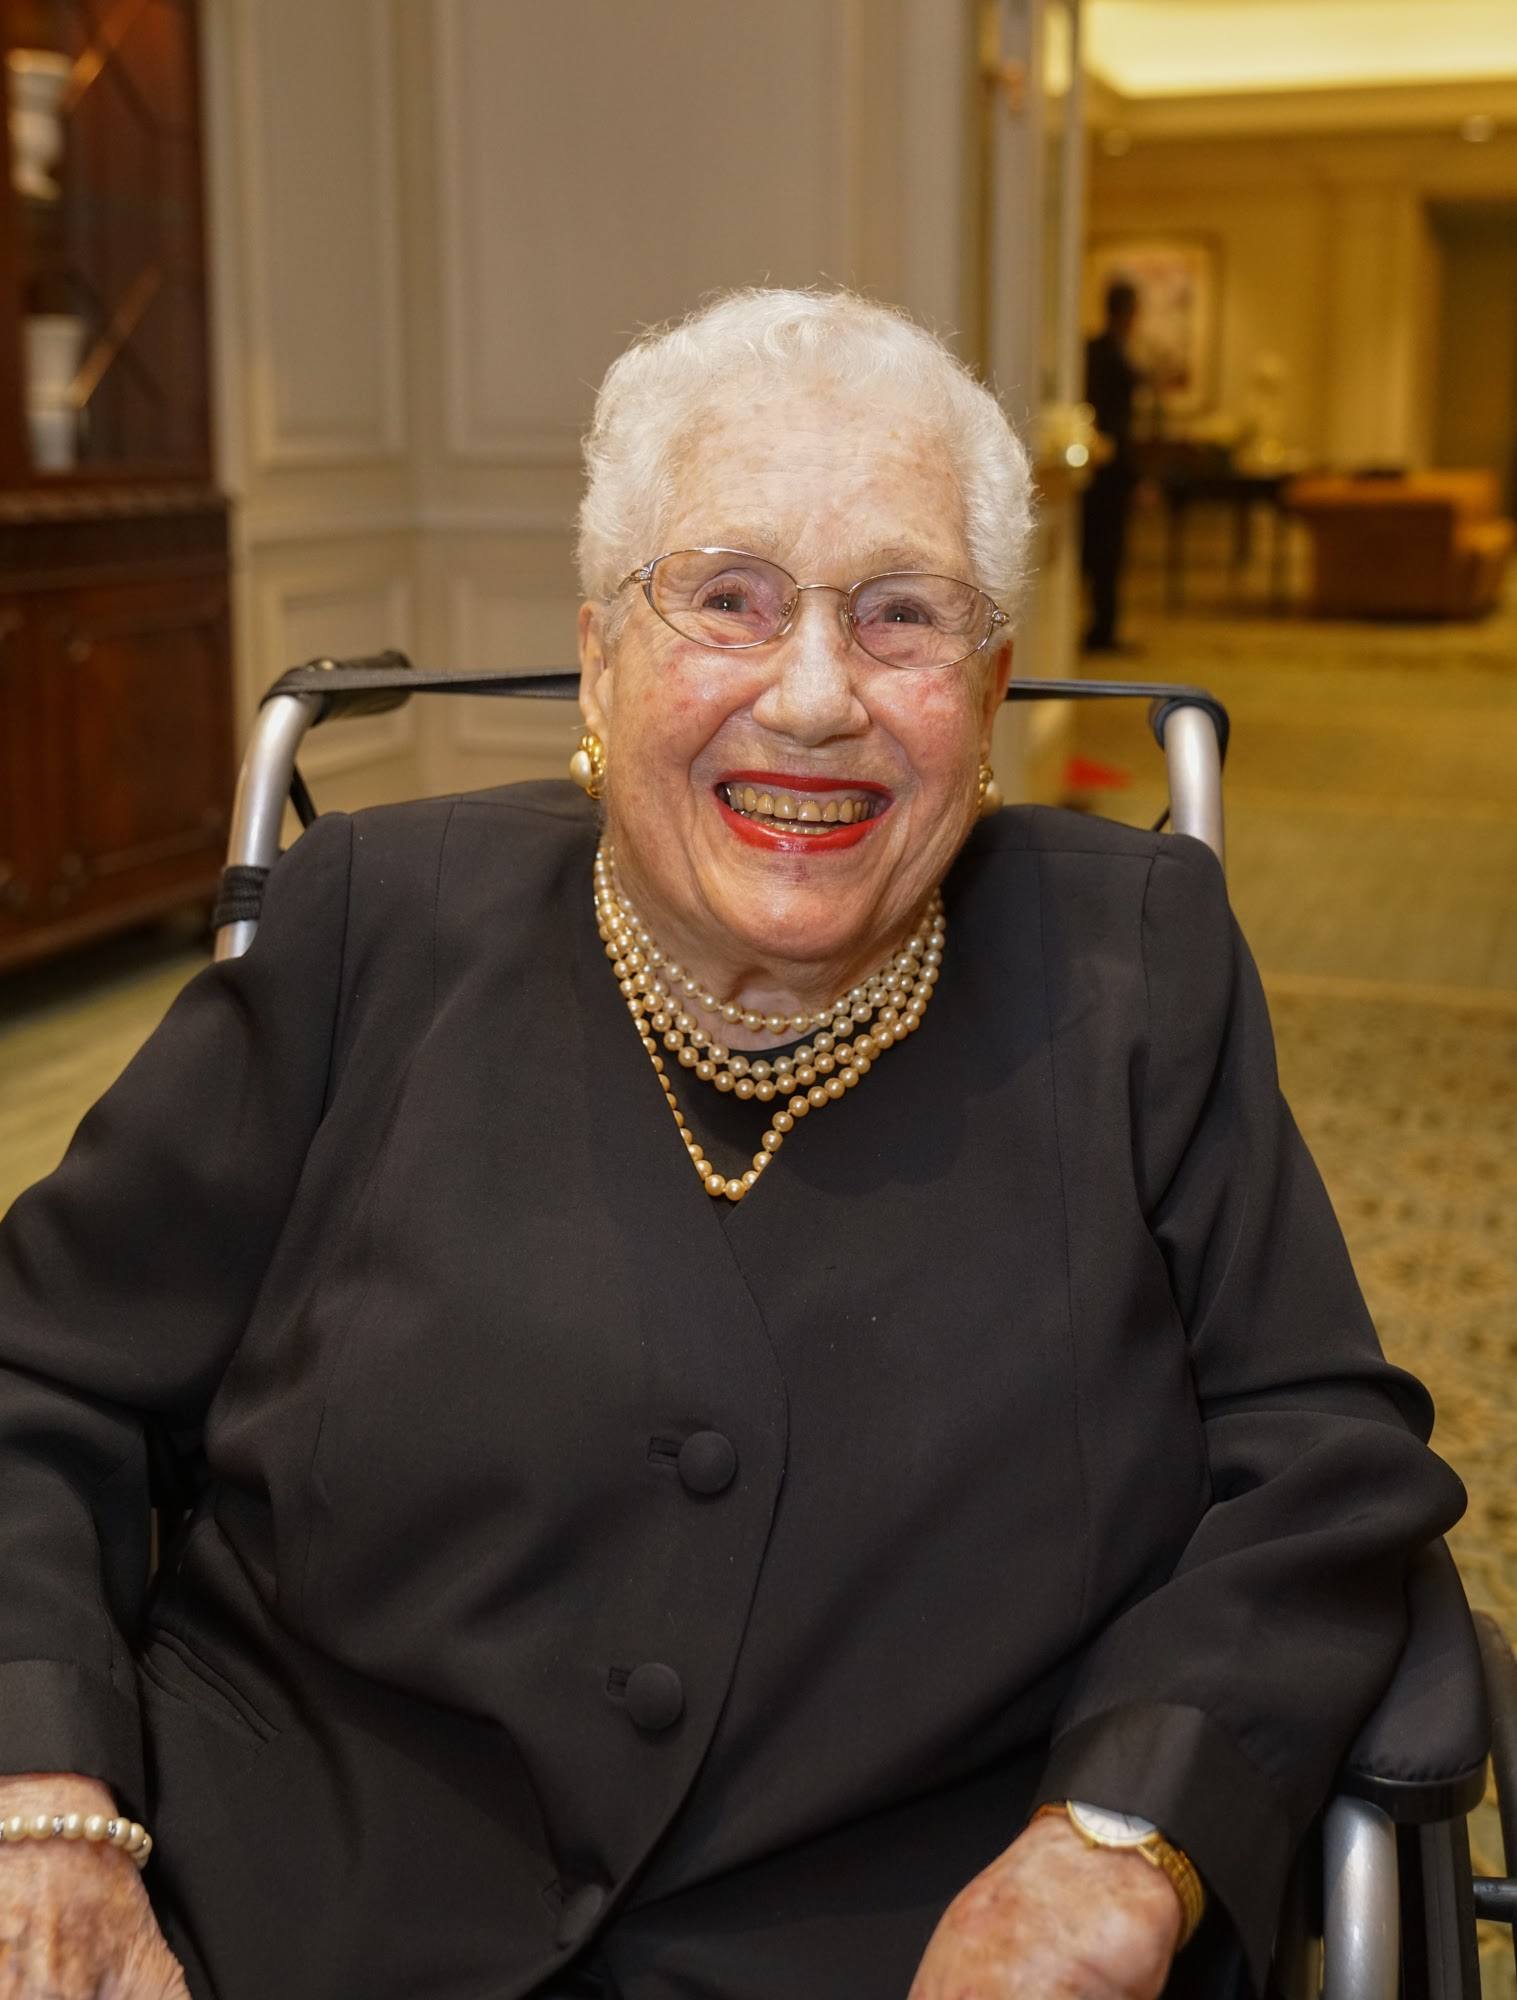 Mrs. Mayer smiles during a gala at The Chicago Lighthouse